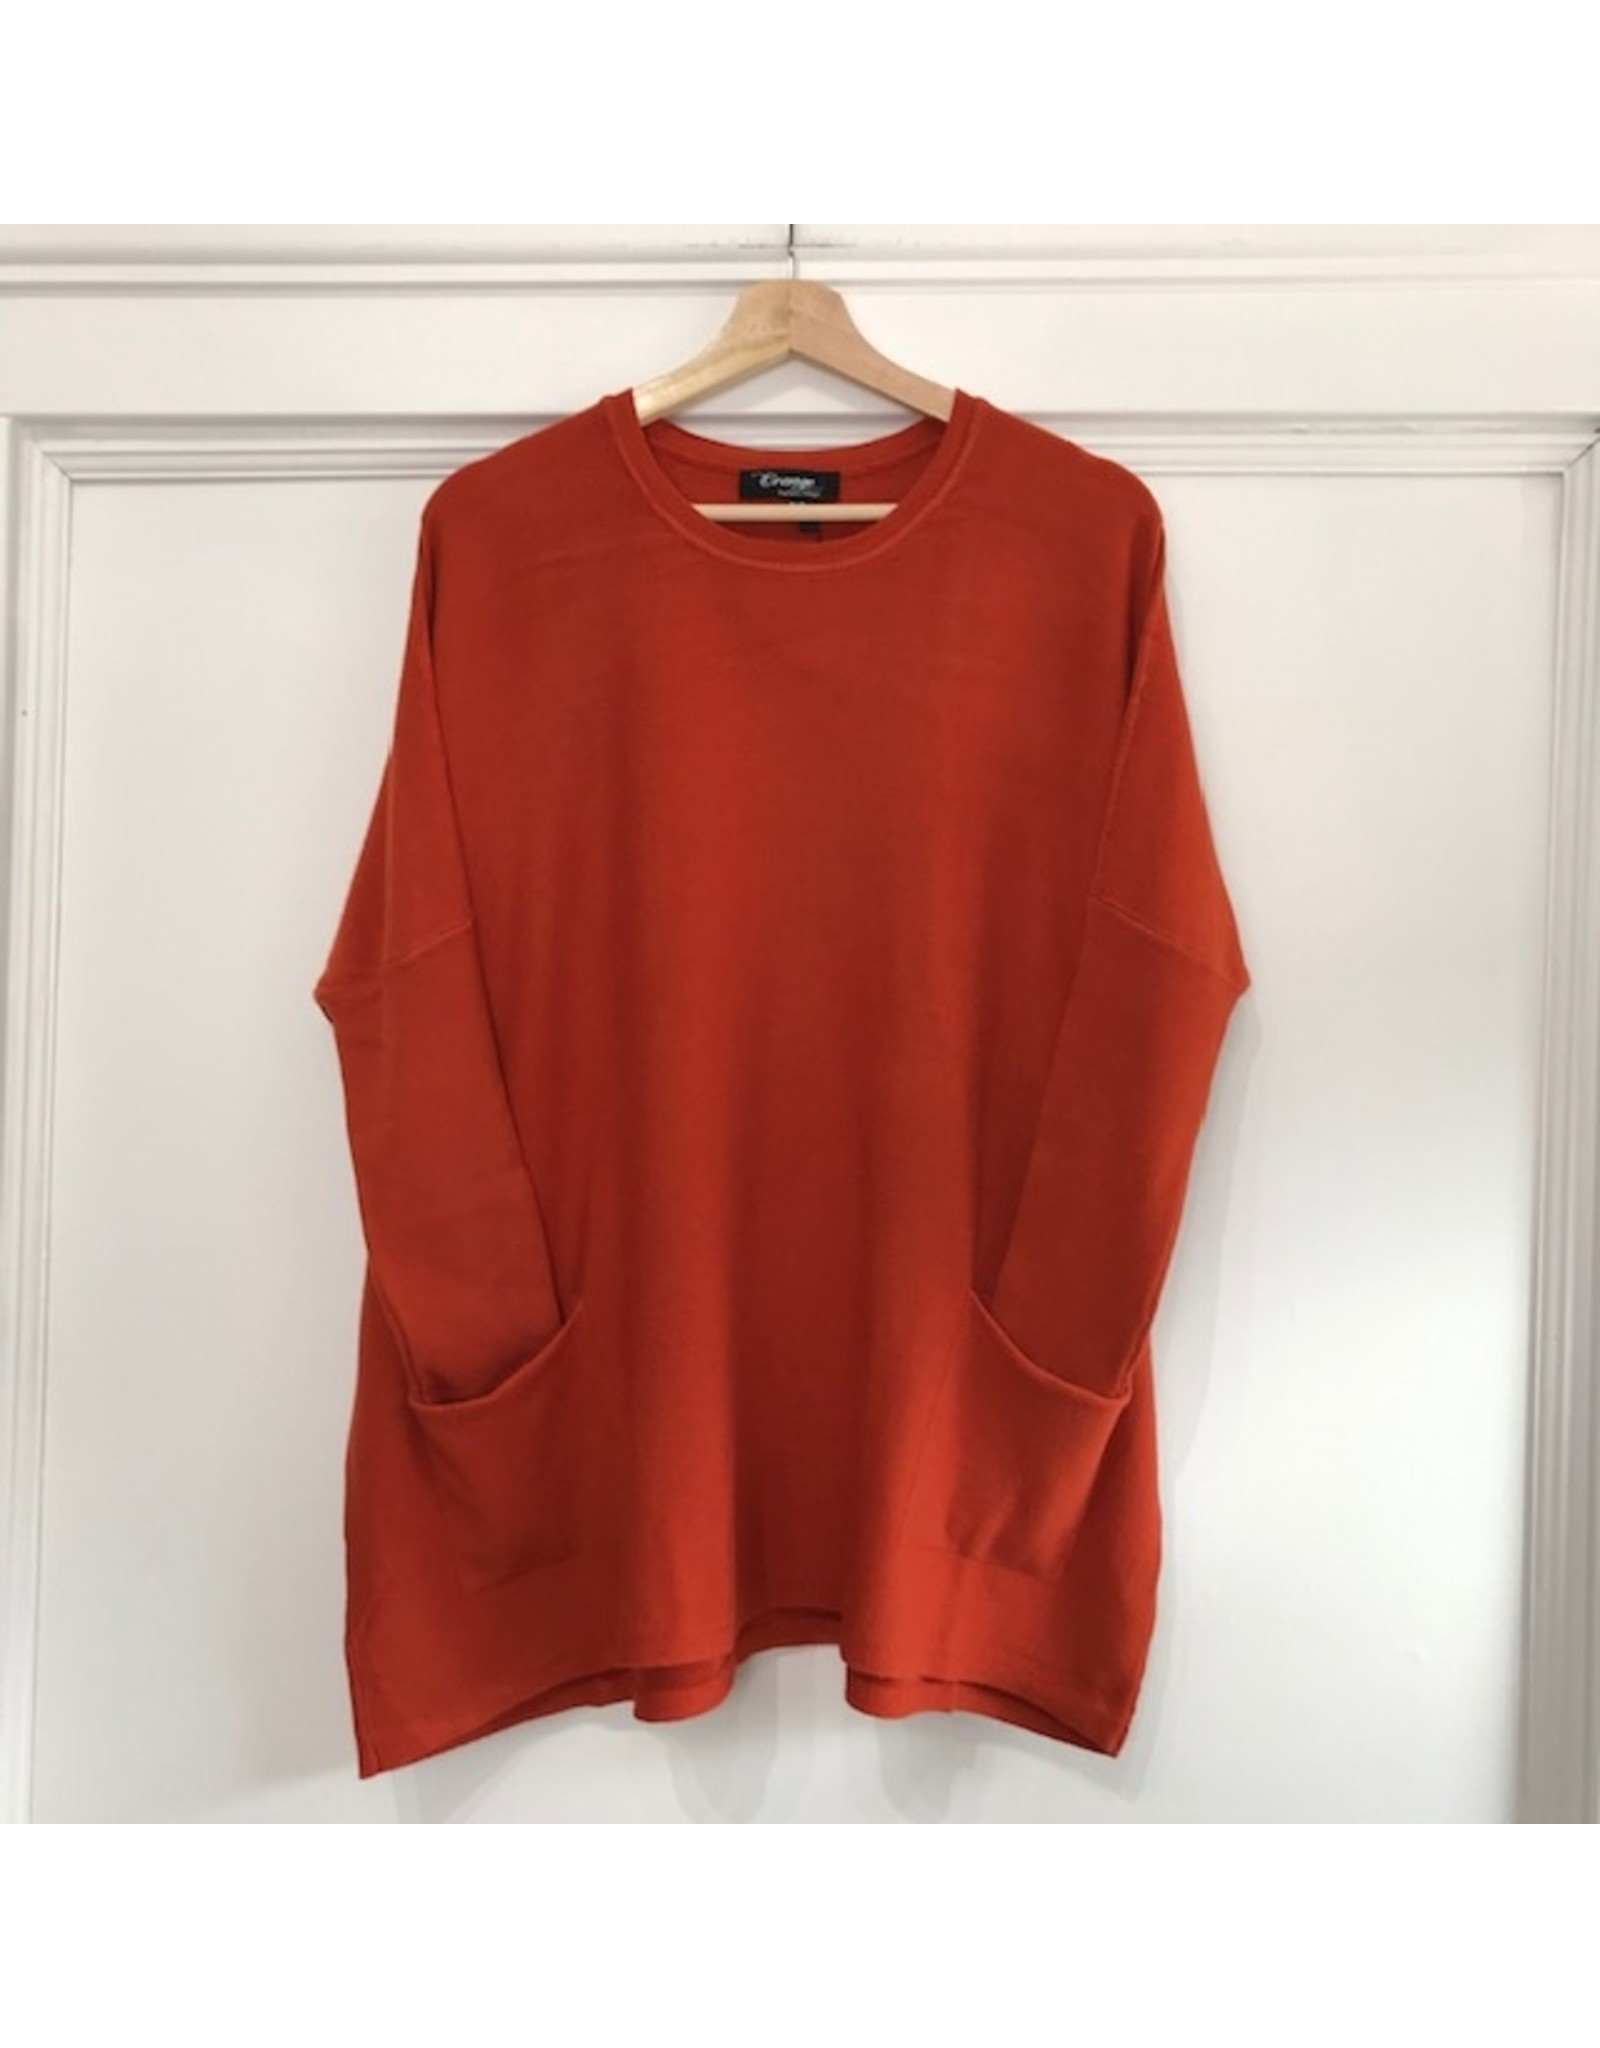 Orange Soft tunic with front pockets